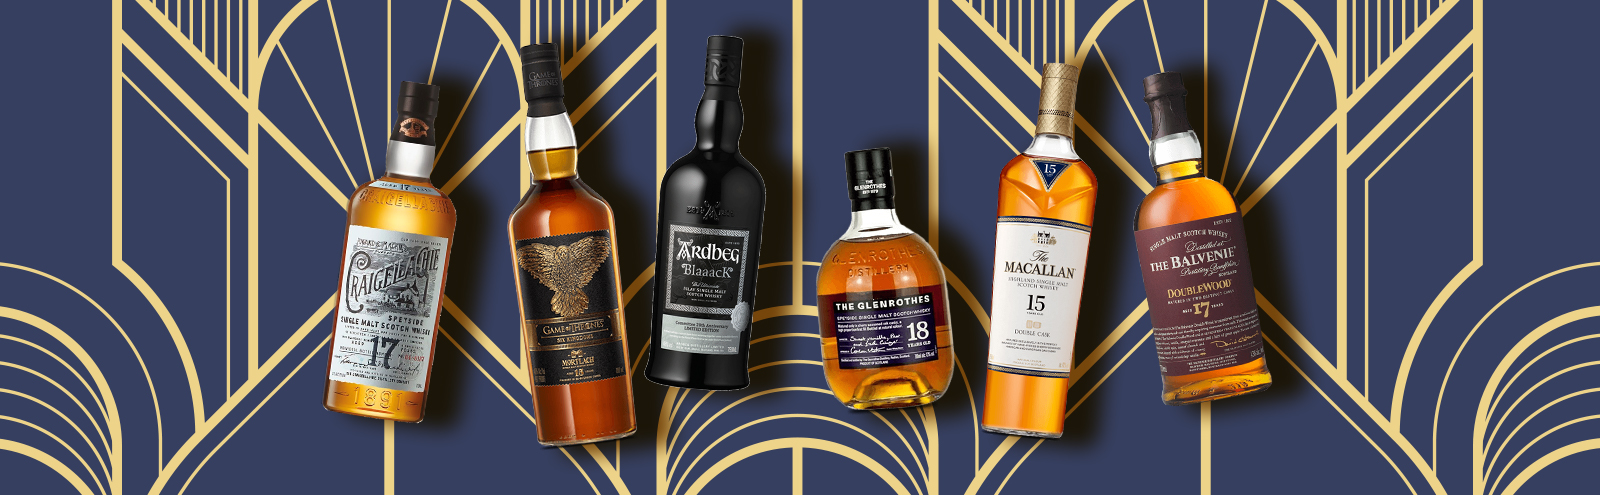 The Best Bottles Of Scotch Whisky Between $150-$200